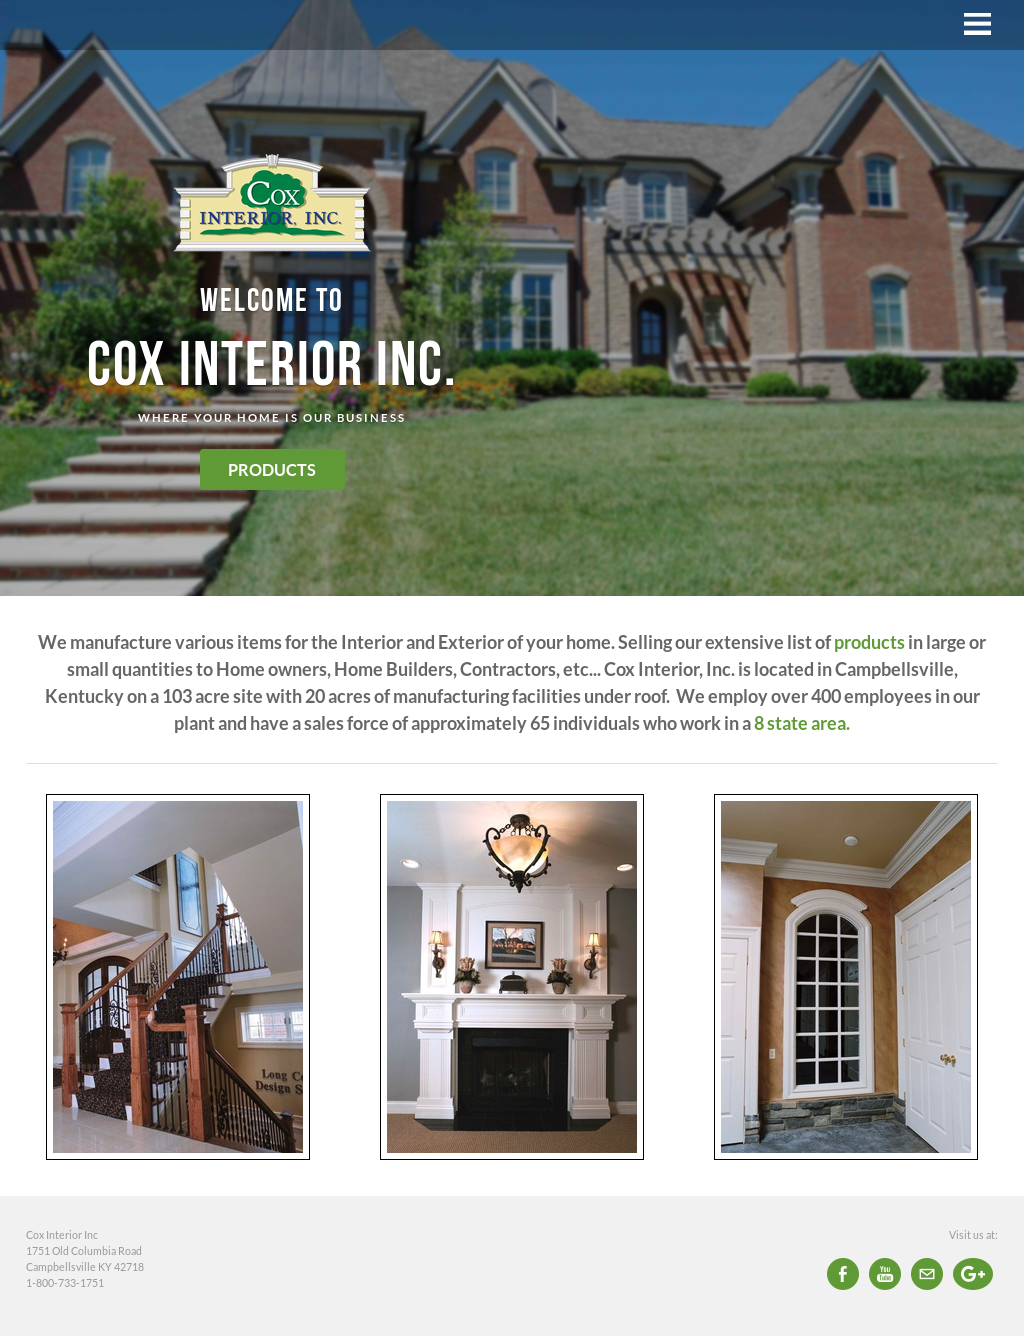 Cox Interior Competitors, Revenue And Employees   Owler Company Profile